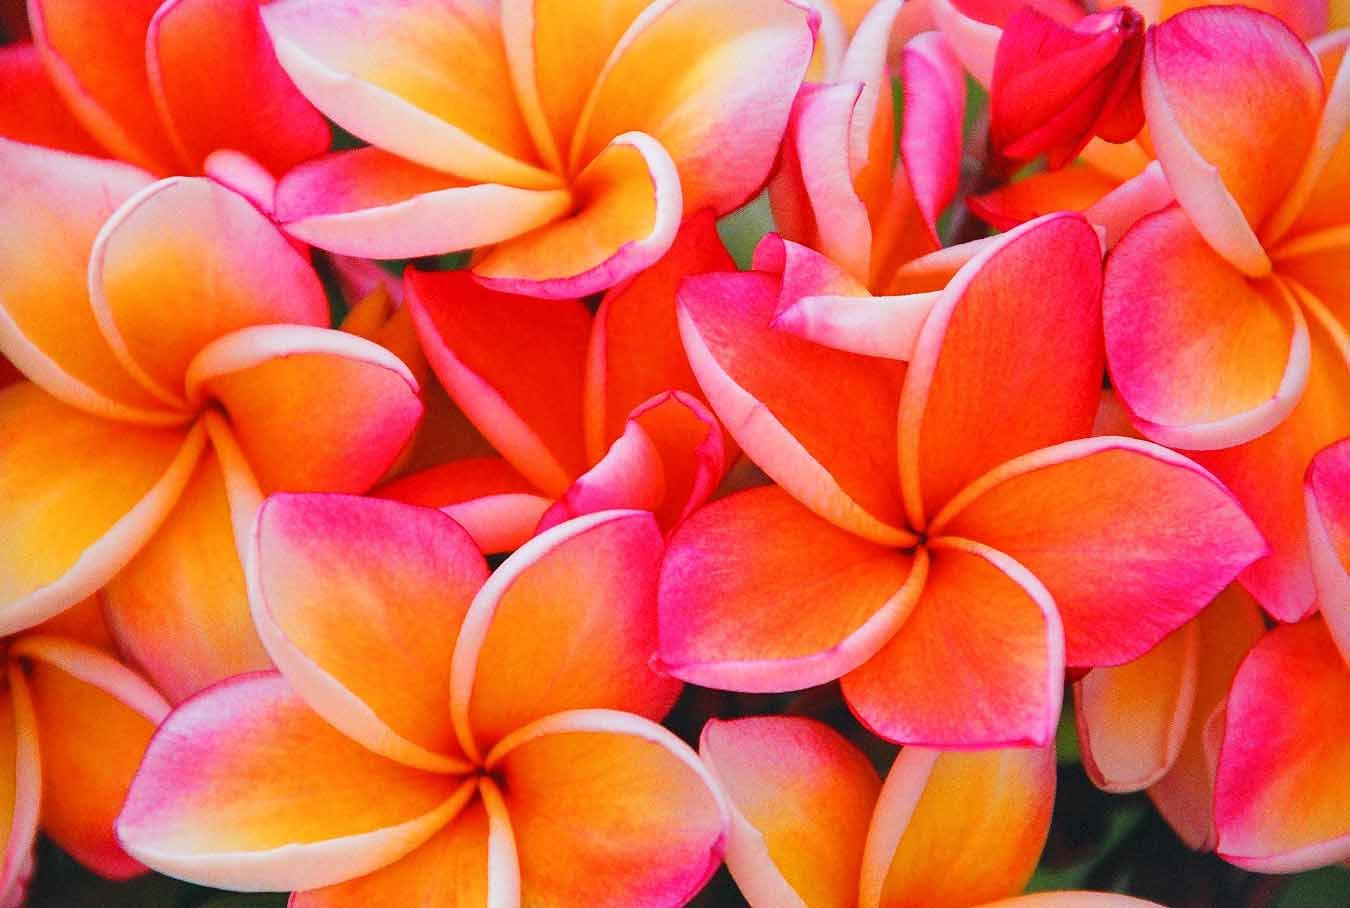 Frangipani - The most beautiful smelling flowers in the world ...